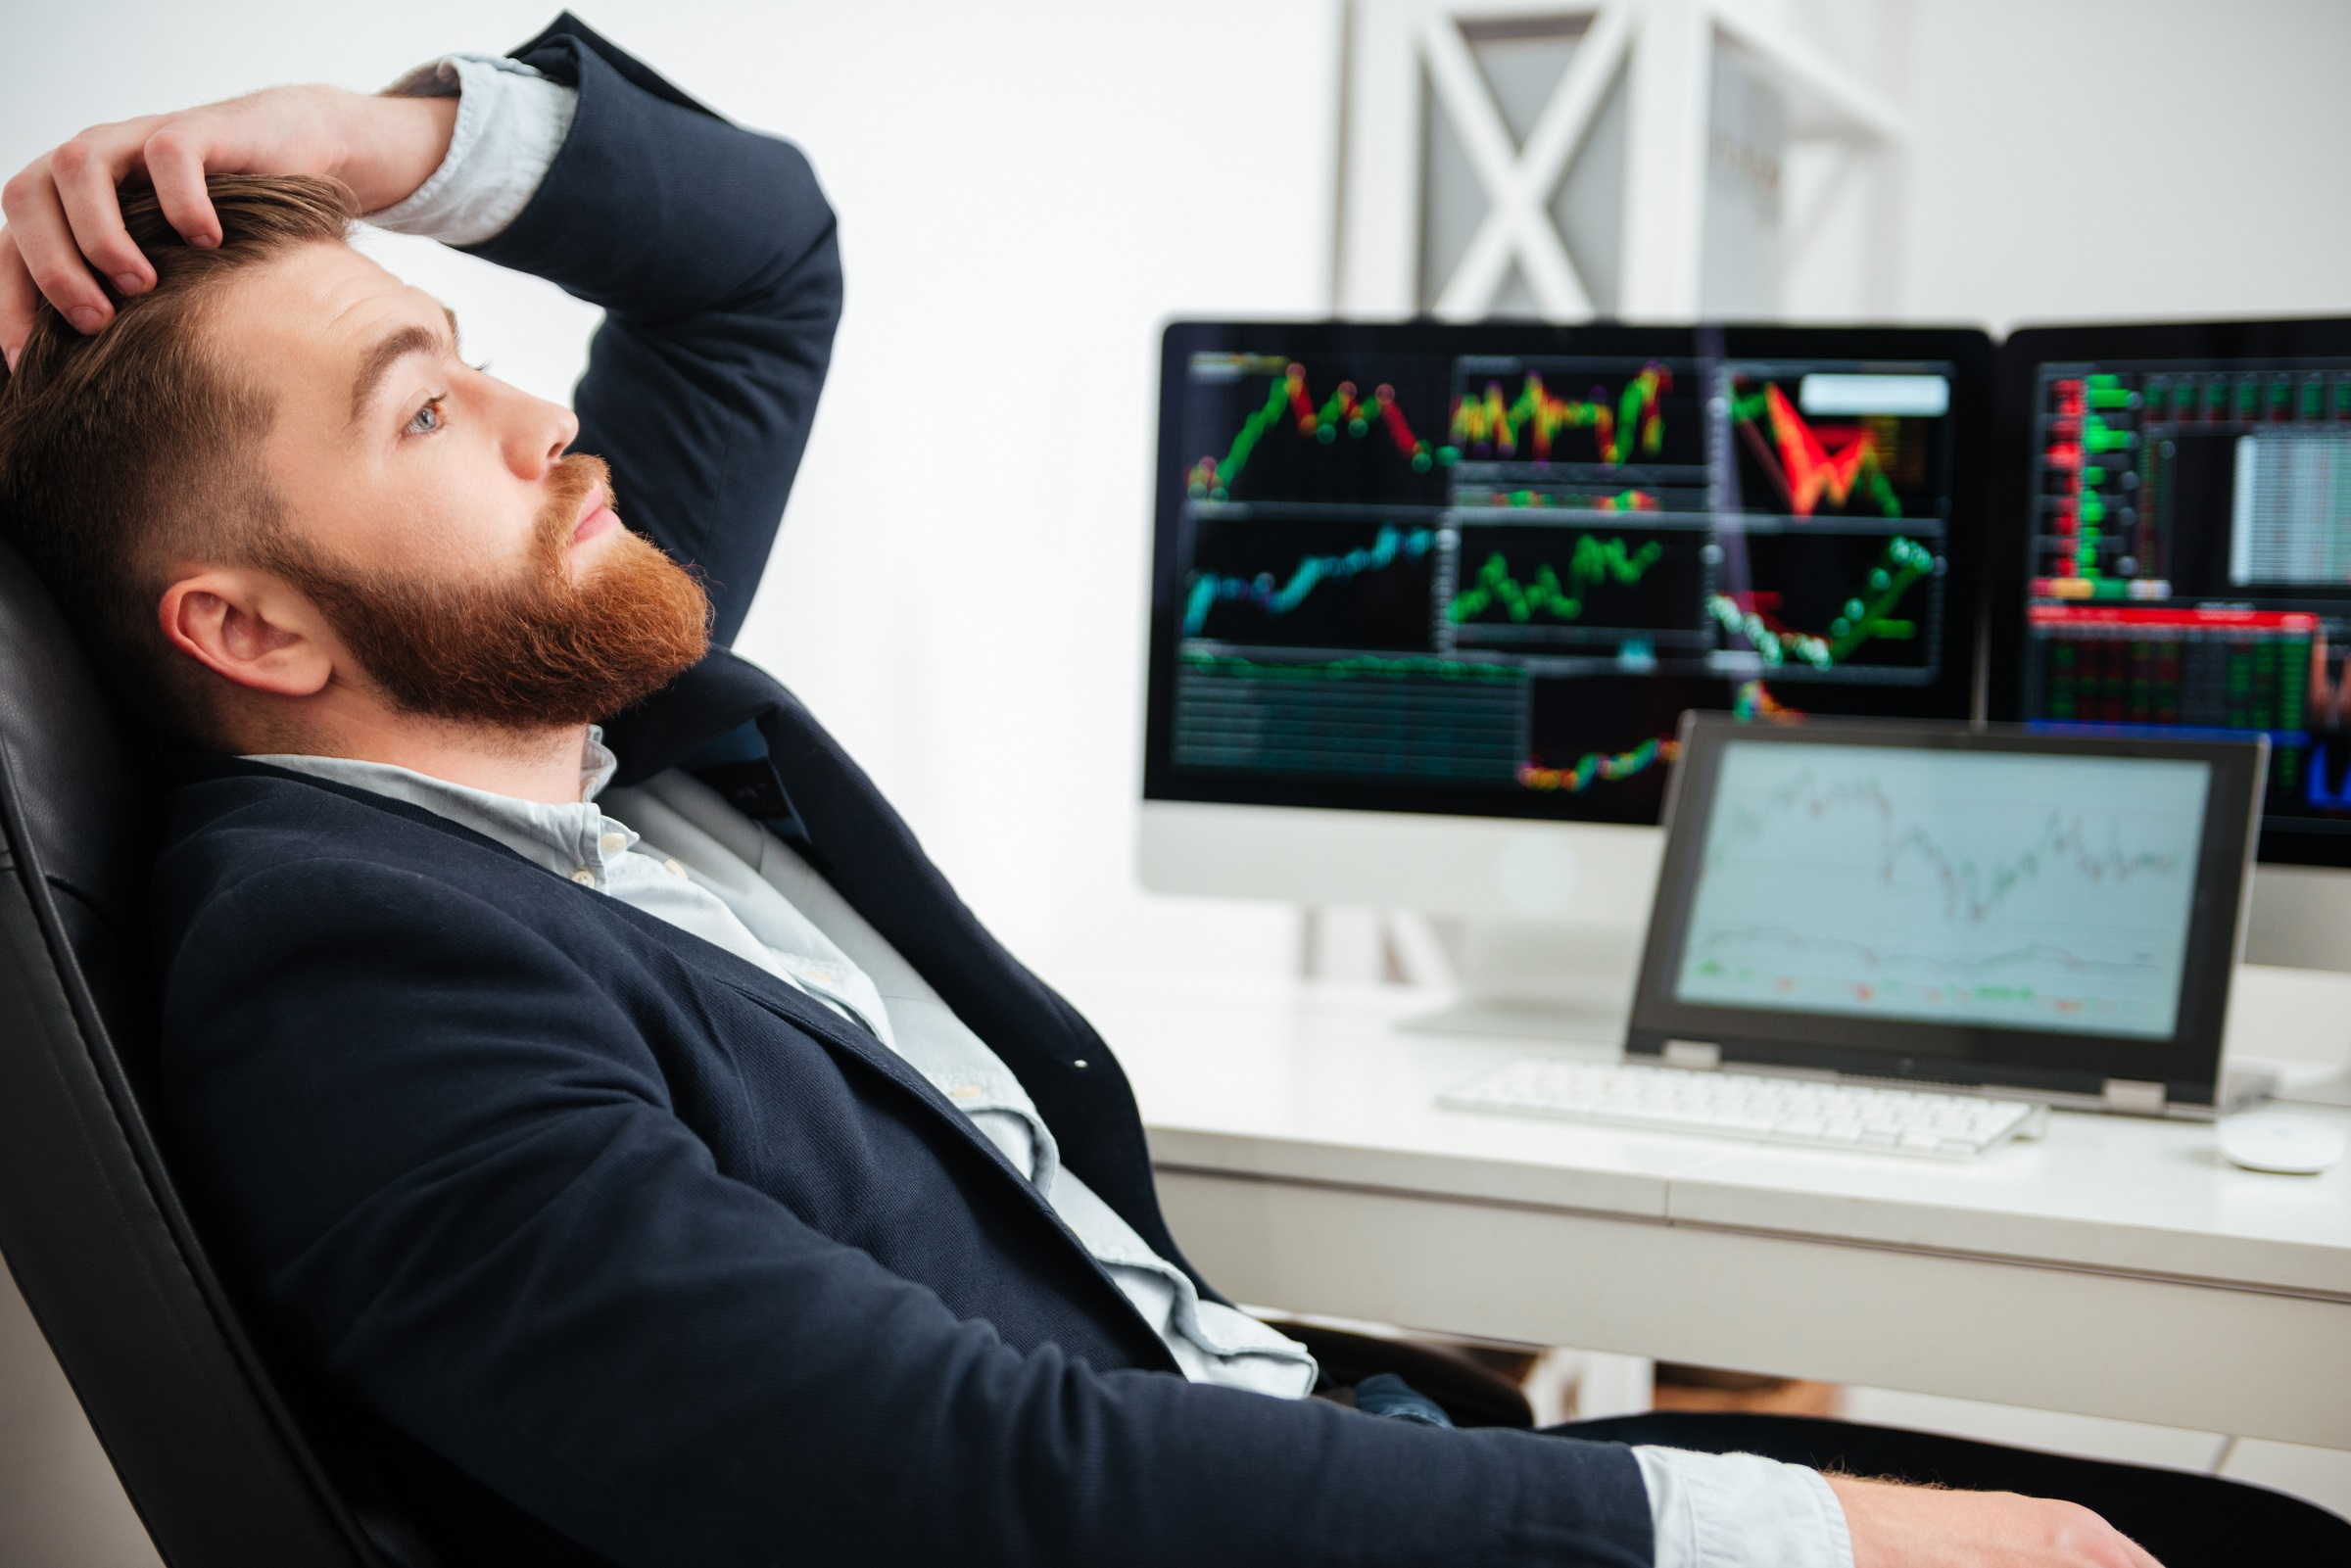 5dd5b83d63da2ce9d9e74fb0_graphicstock-stressed-tired-young-businessman-sitting-and-thinking-at-workplace-in-office_b8fabu7_3l.jpg